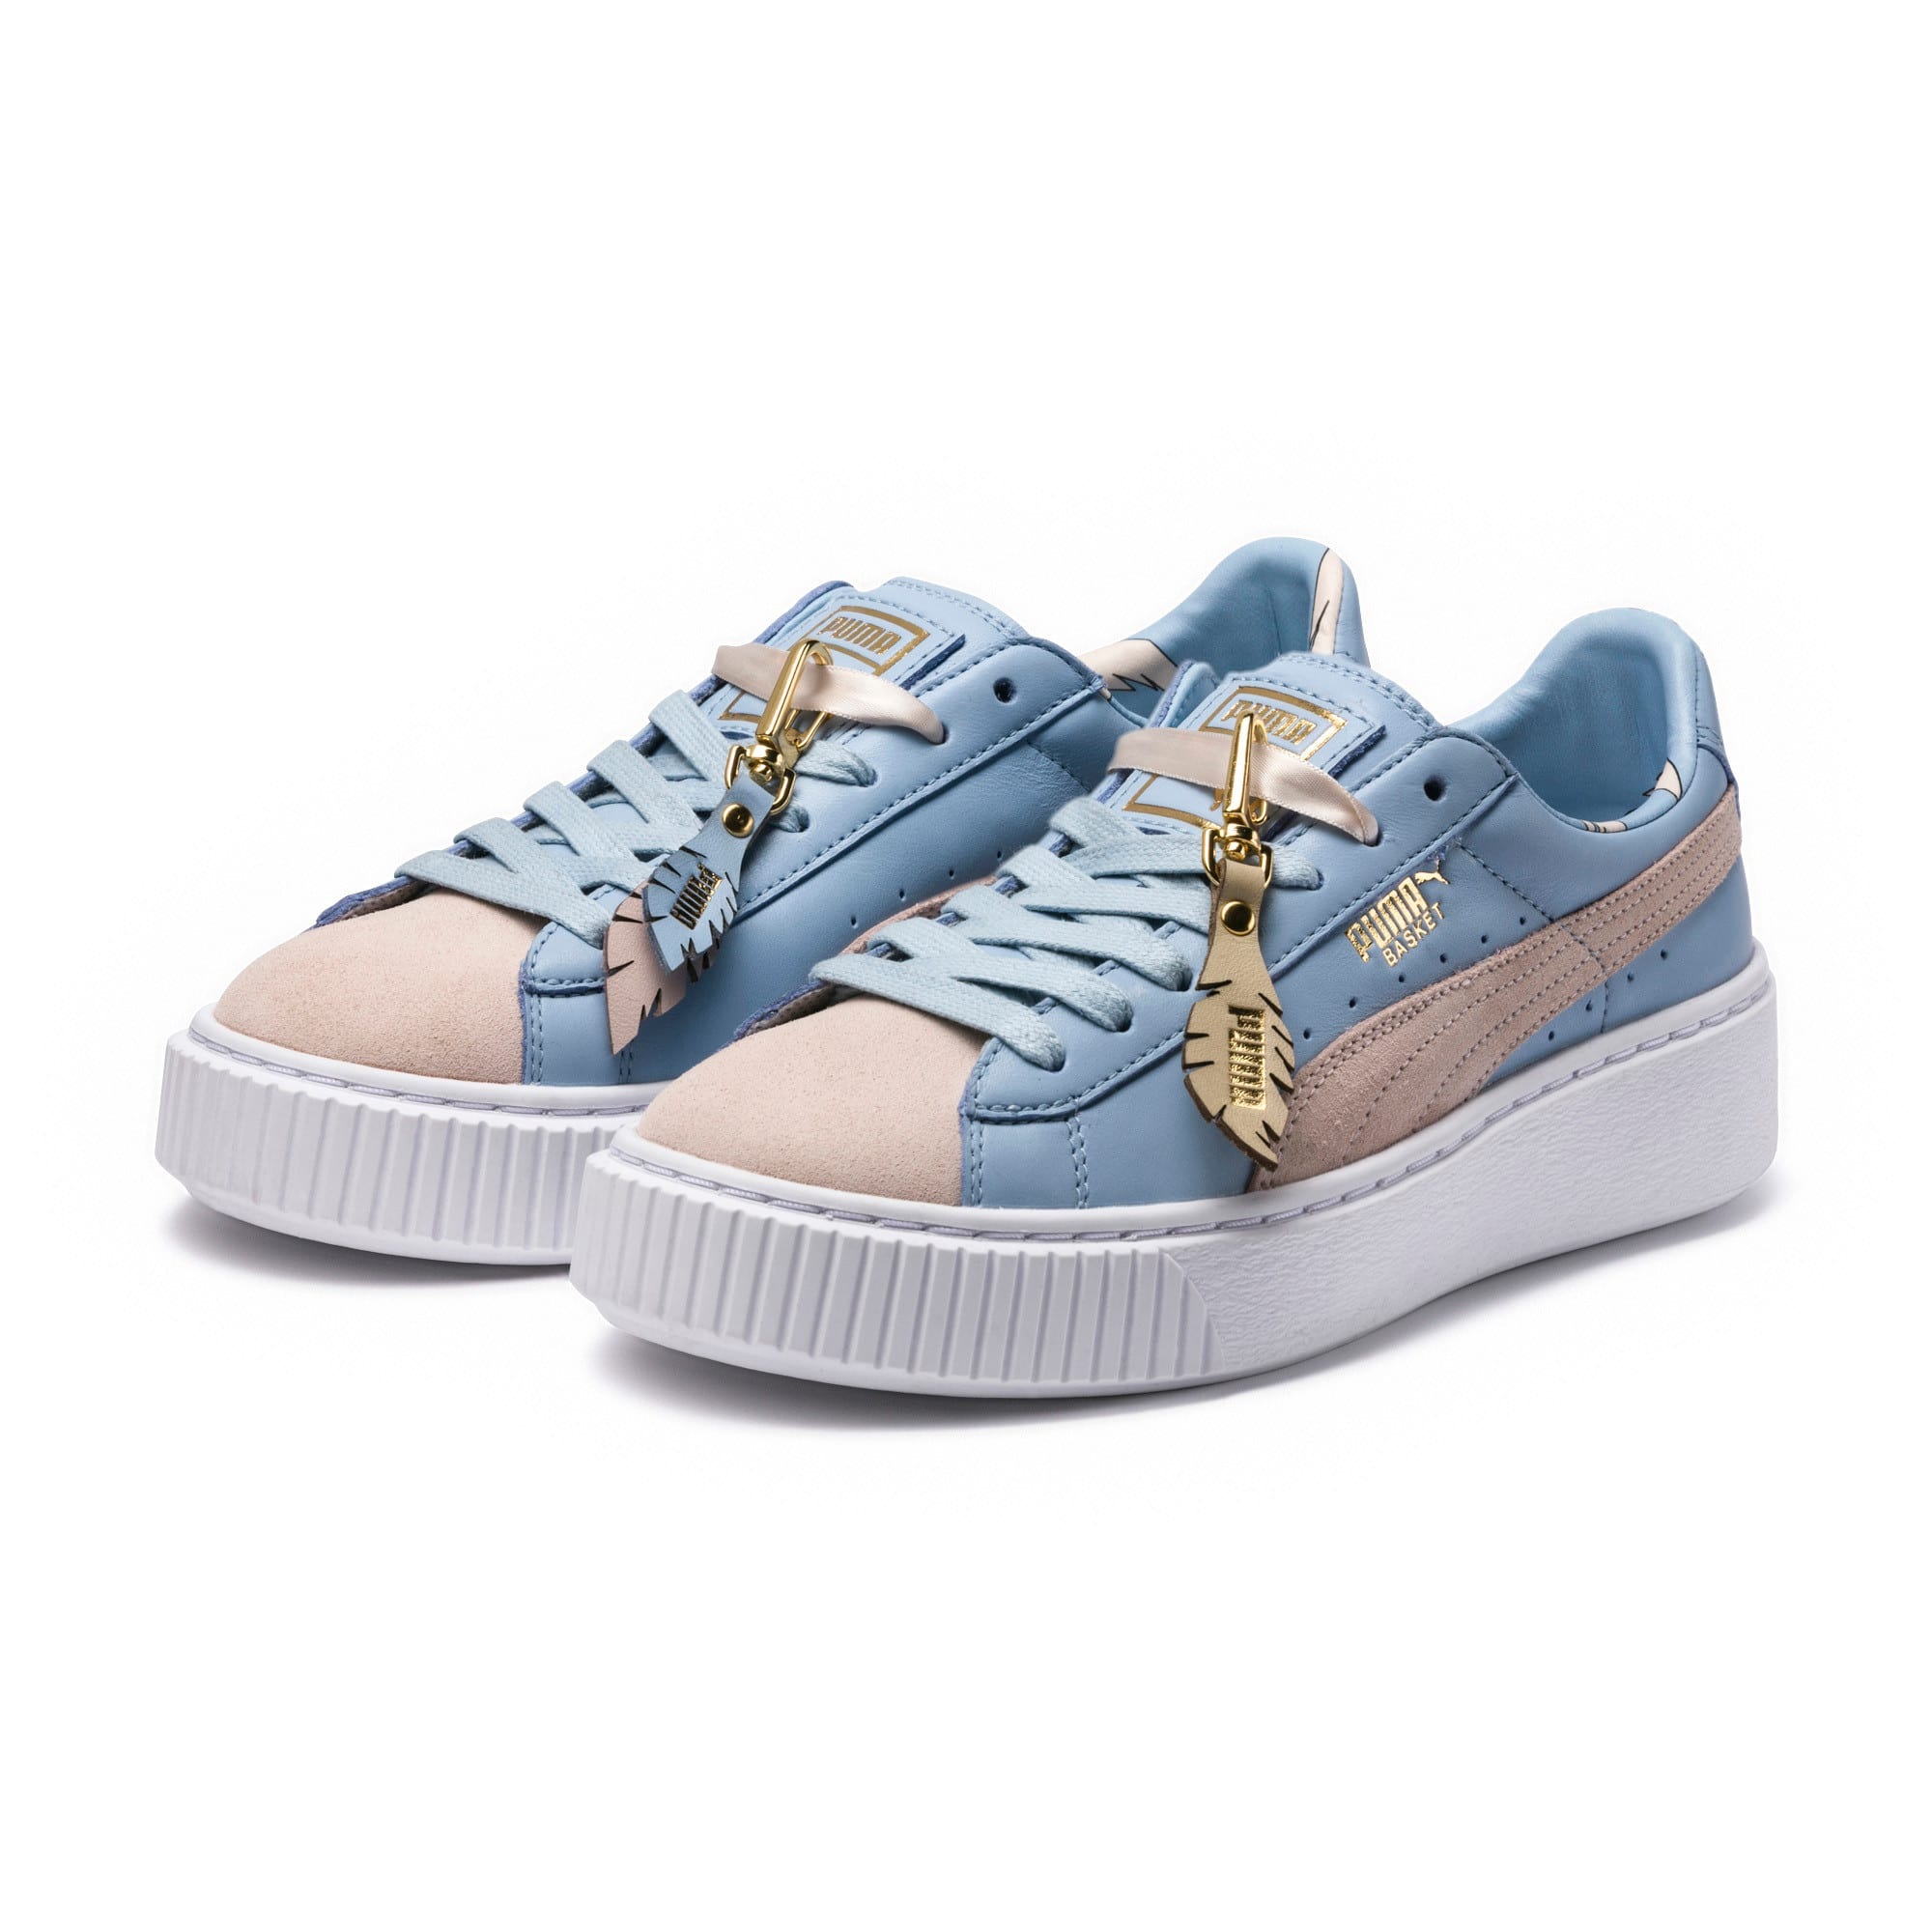 Thumbnail 2 of Basket Platform Coach Women's Trainers, Silver Peony-Cashmere Blue, medium-IND